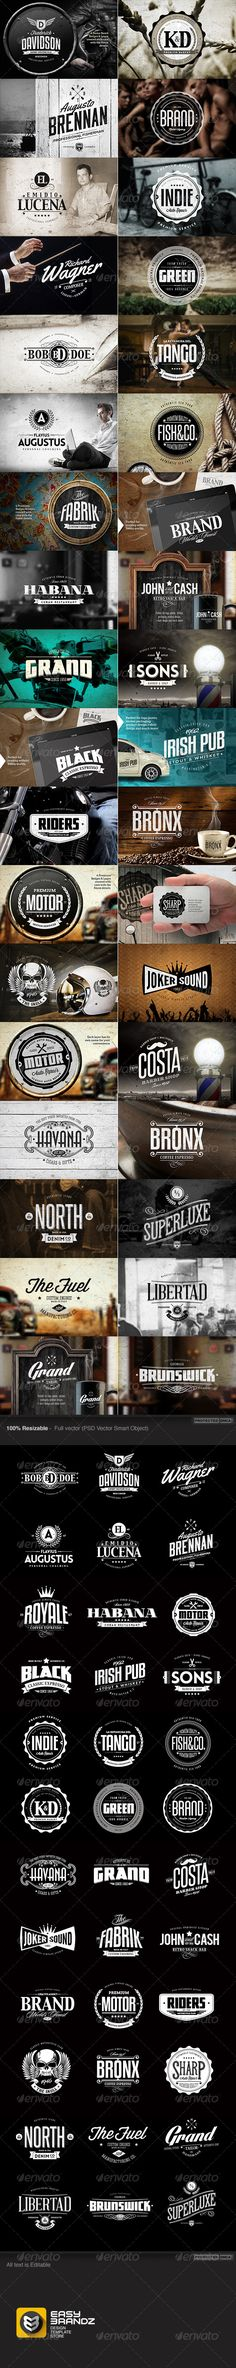 36 Badges & Logos Bundle Template | Buy and Download: http://graphicriver.net/item/36-badges-logos-bundle/7563503?WT.ac=category_thumb&WT.z_author=Easybrandz2&ref=ksioks